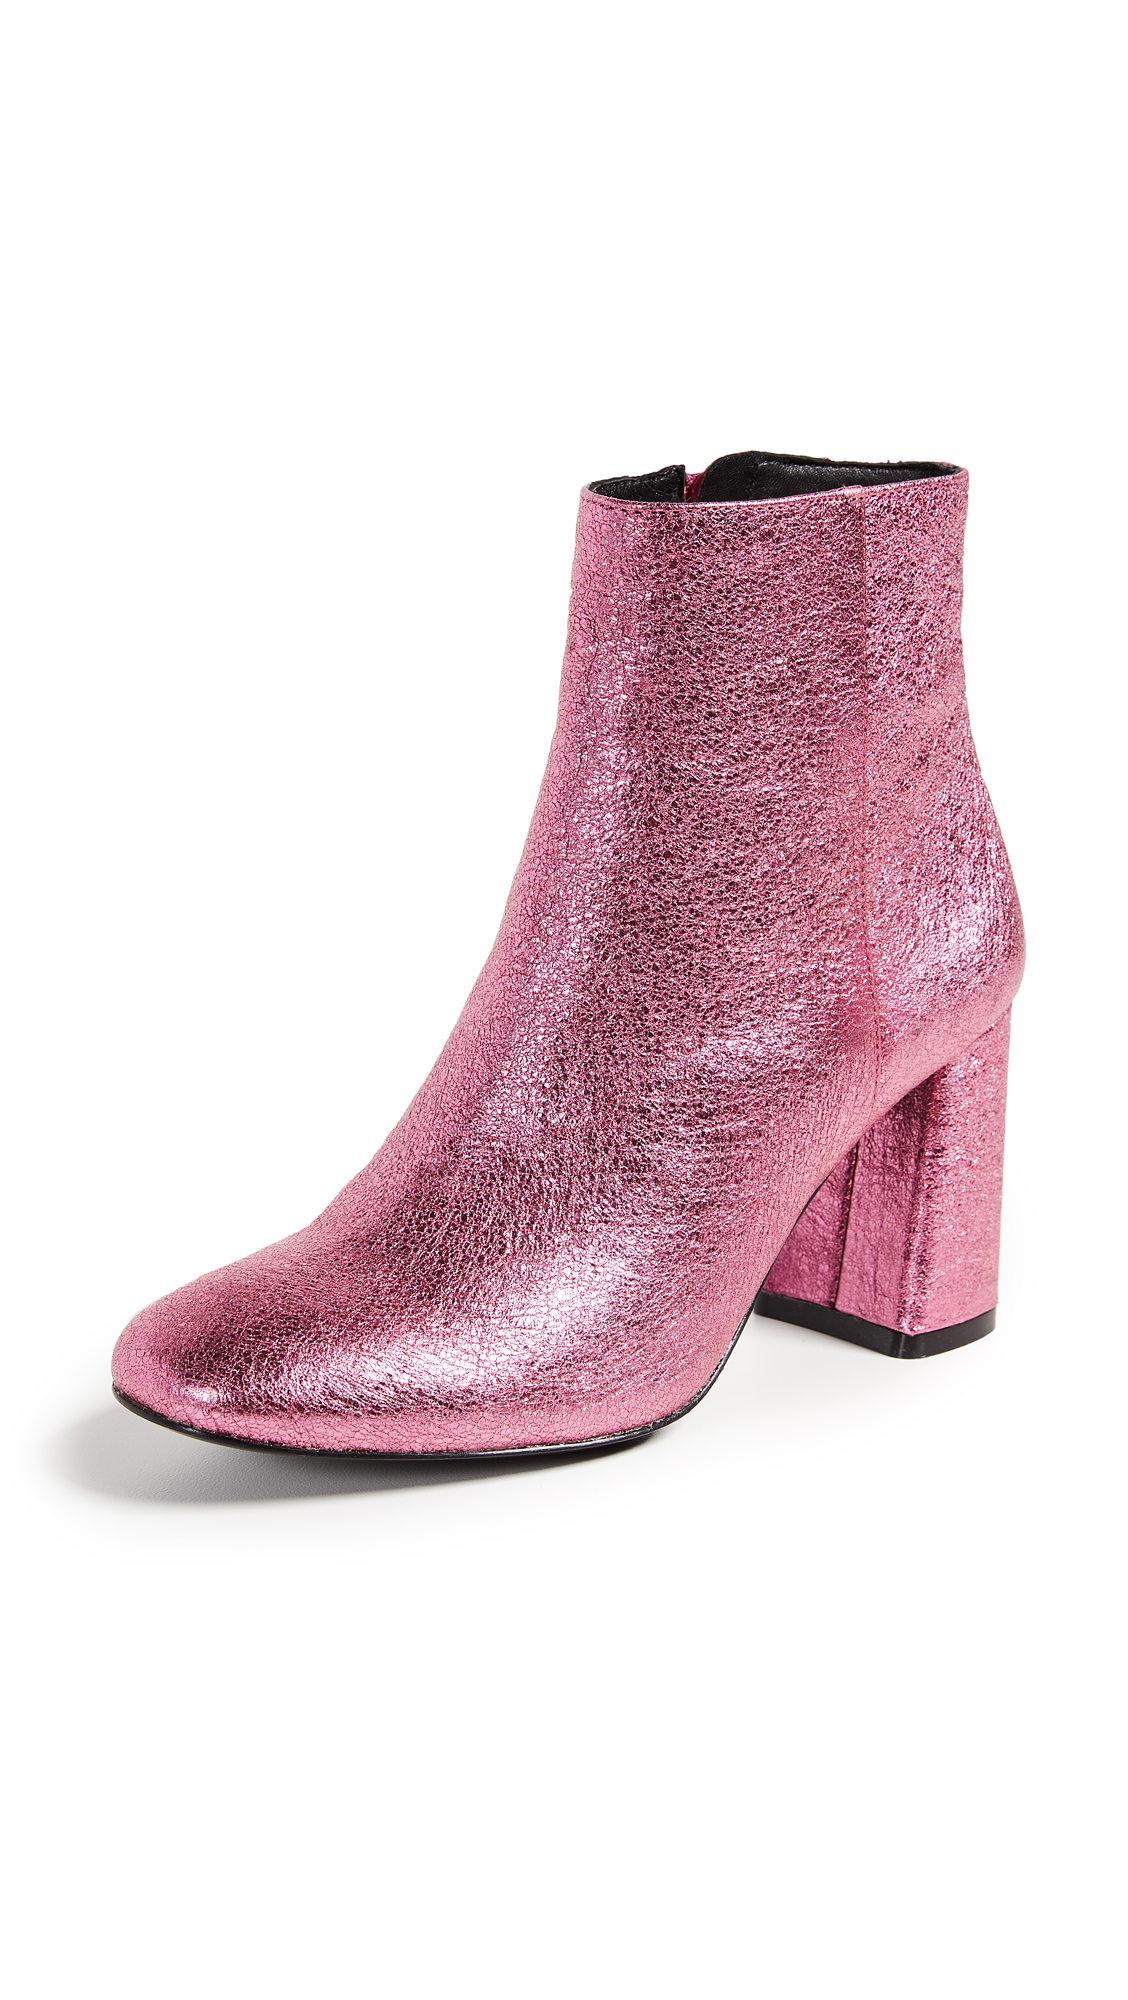 alice + olivia Dobrey Block Heel Booties - Bubblegum